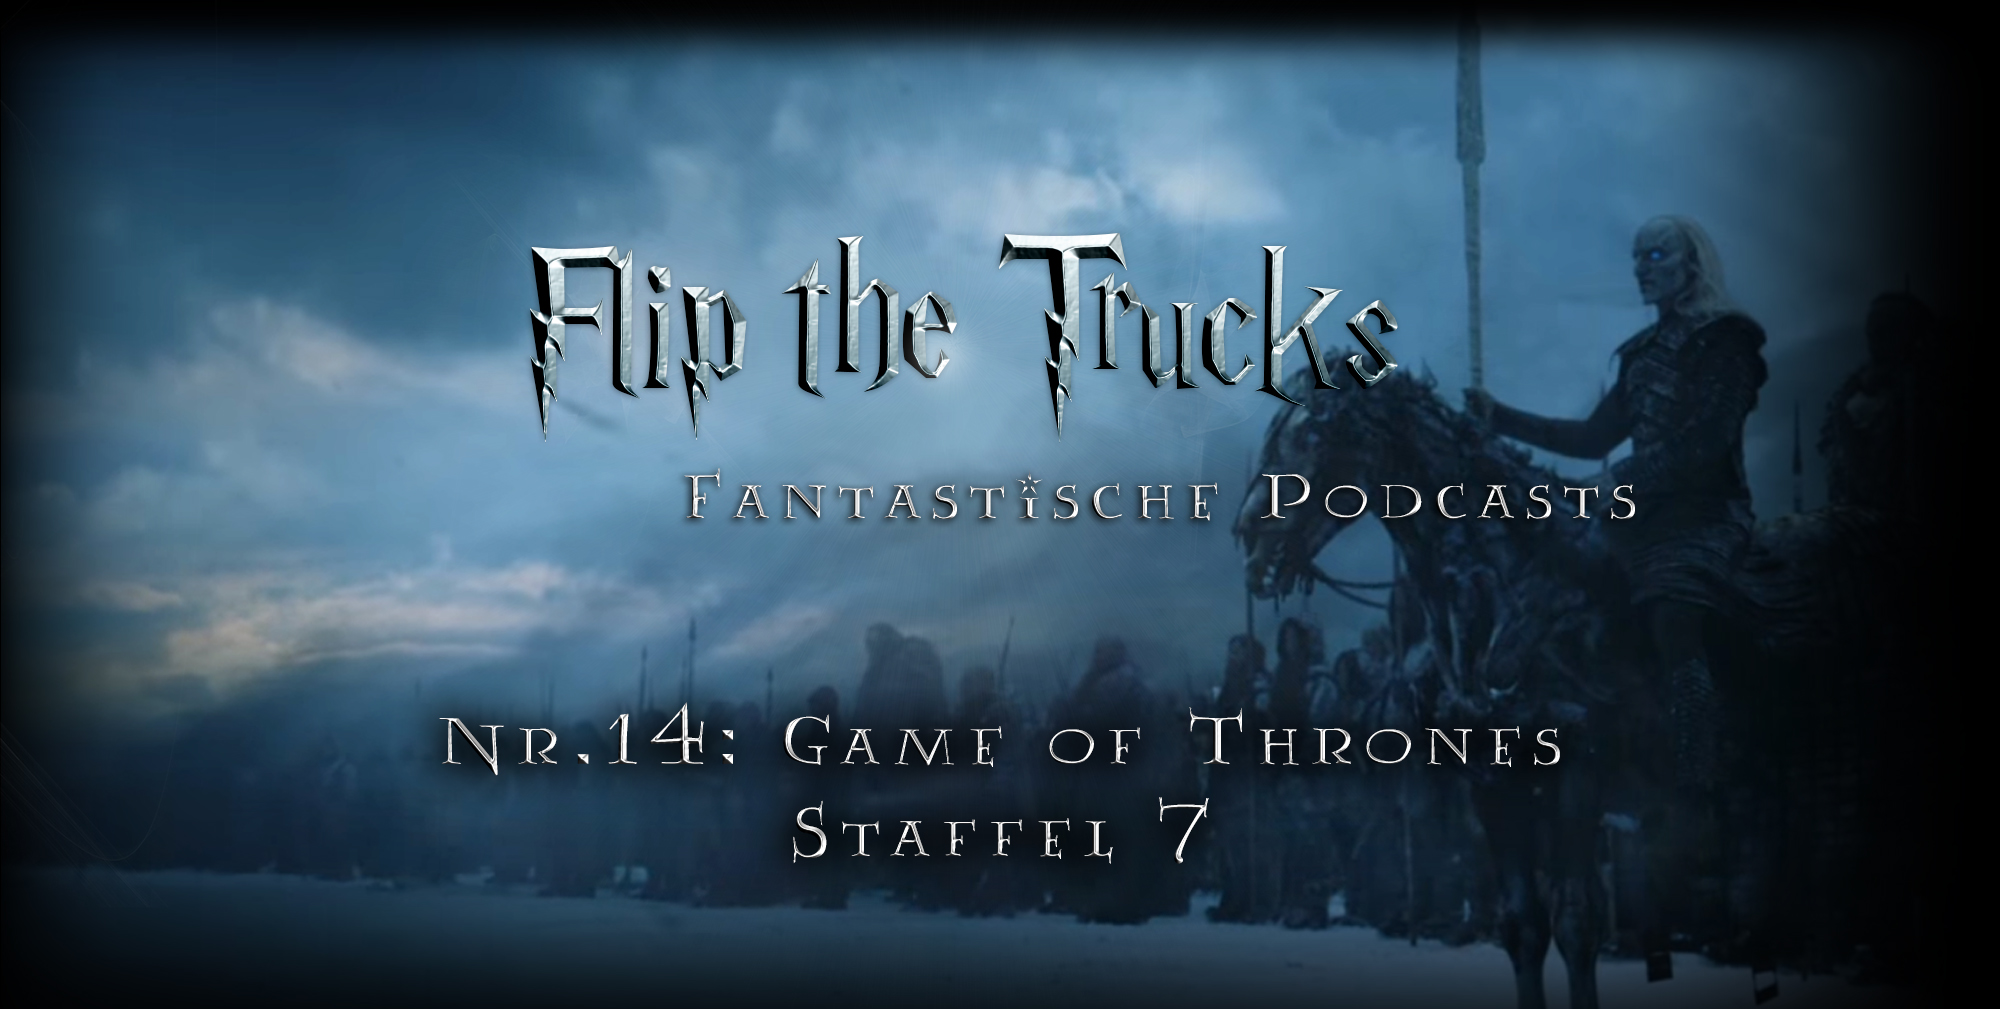 Fantasische Podcasts 14 | Flip the Truck | Game of Thrones